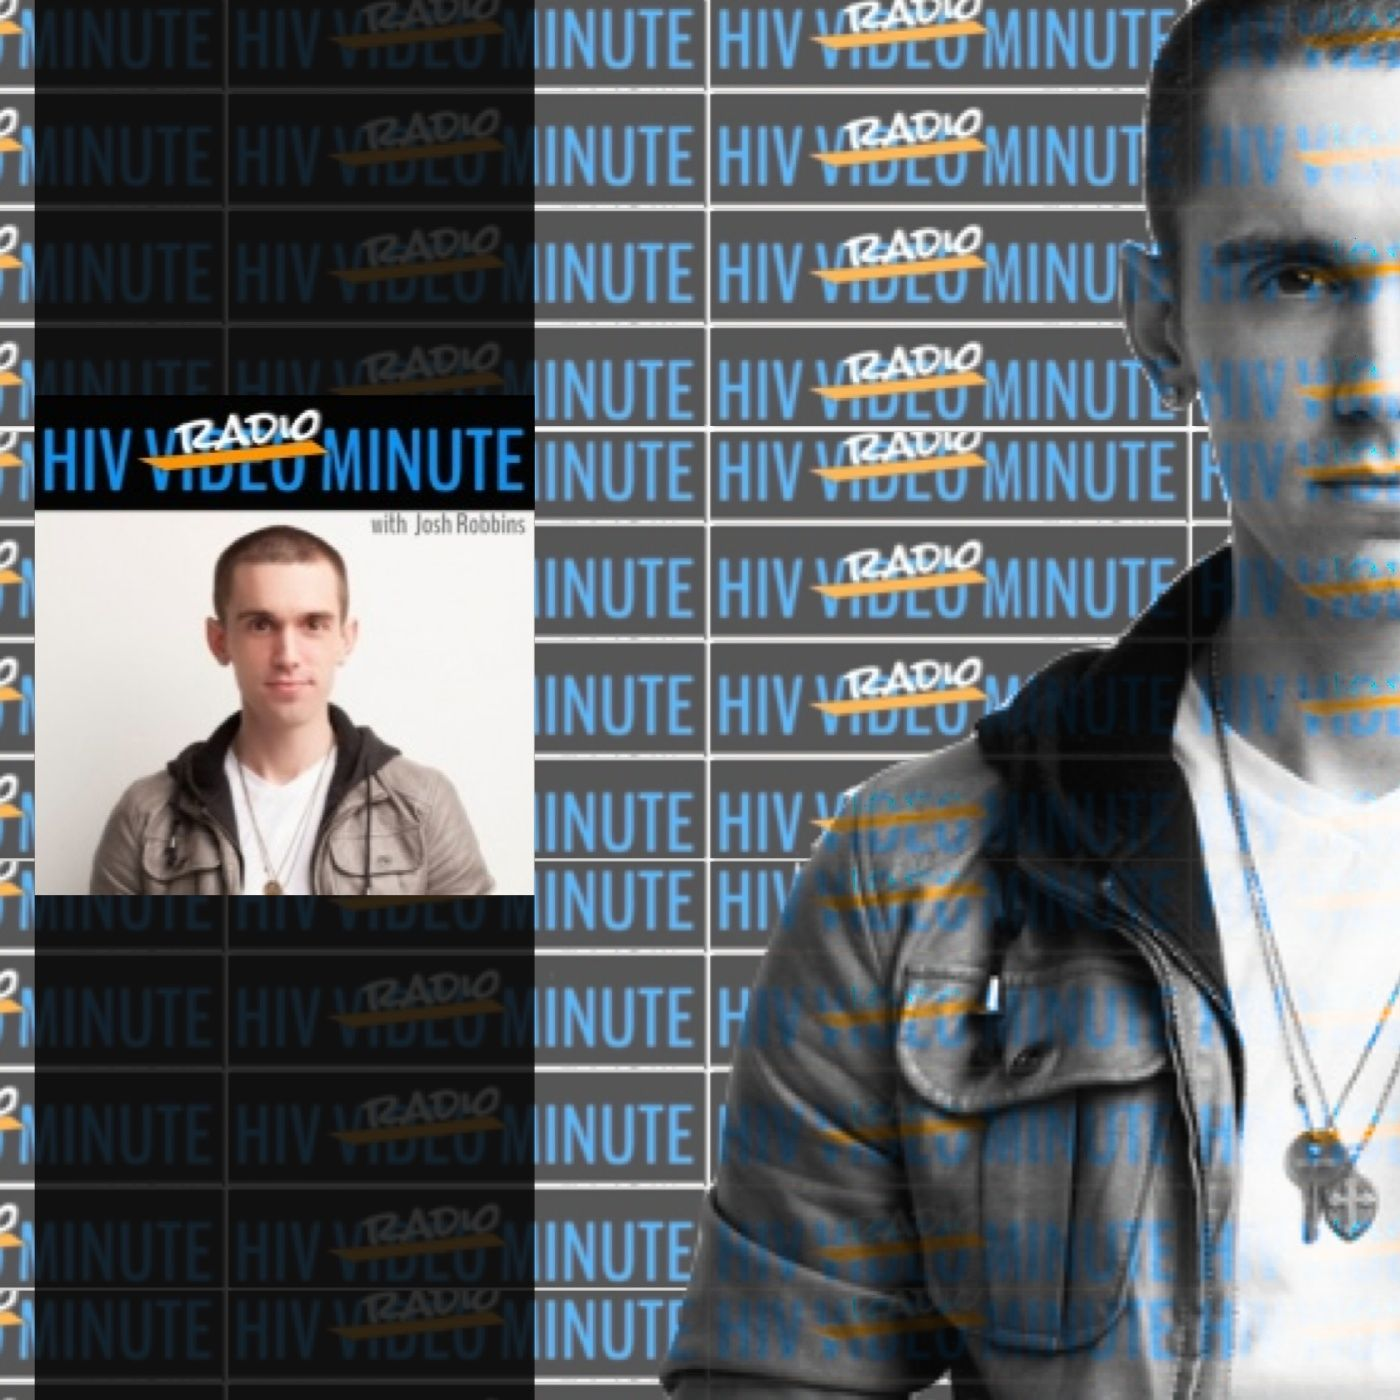 HIV Radio Minute